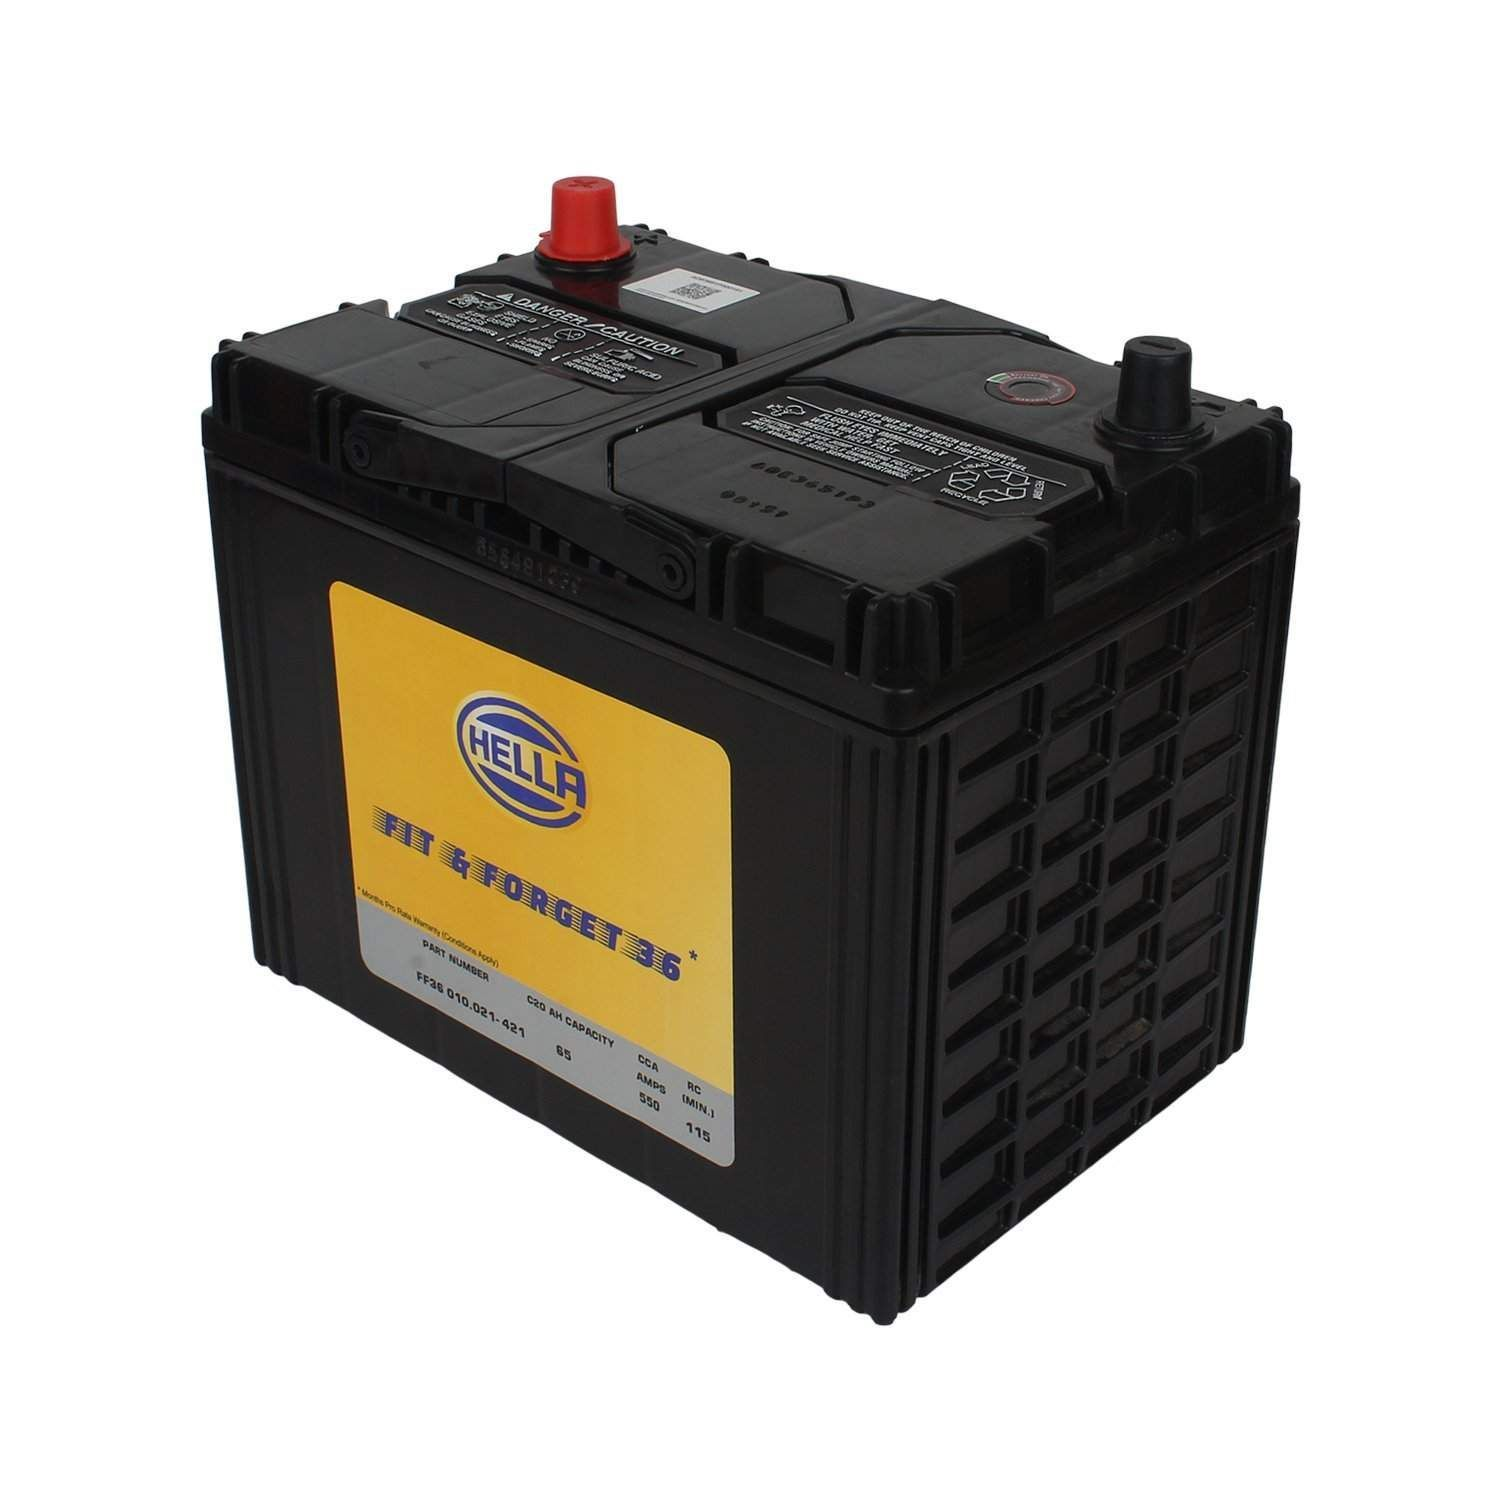 Used Car Batteries for Sale Near Me New Car Release